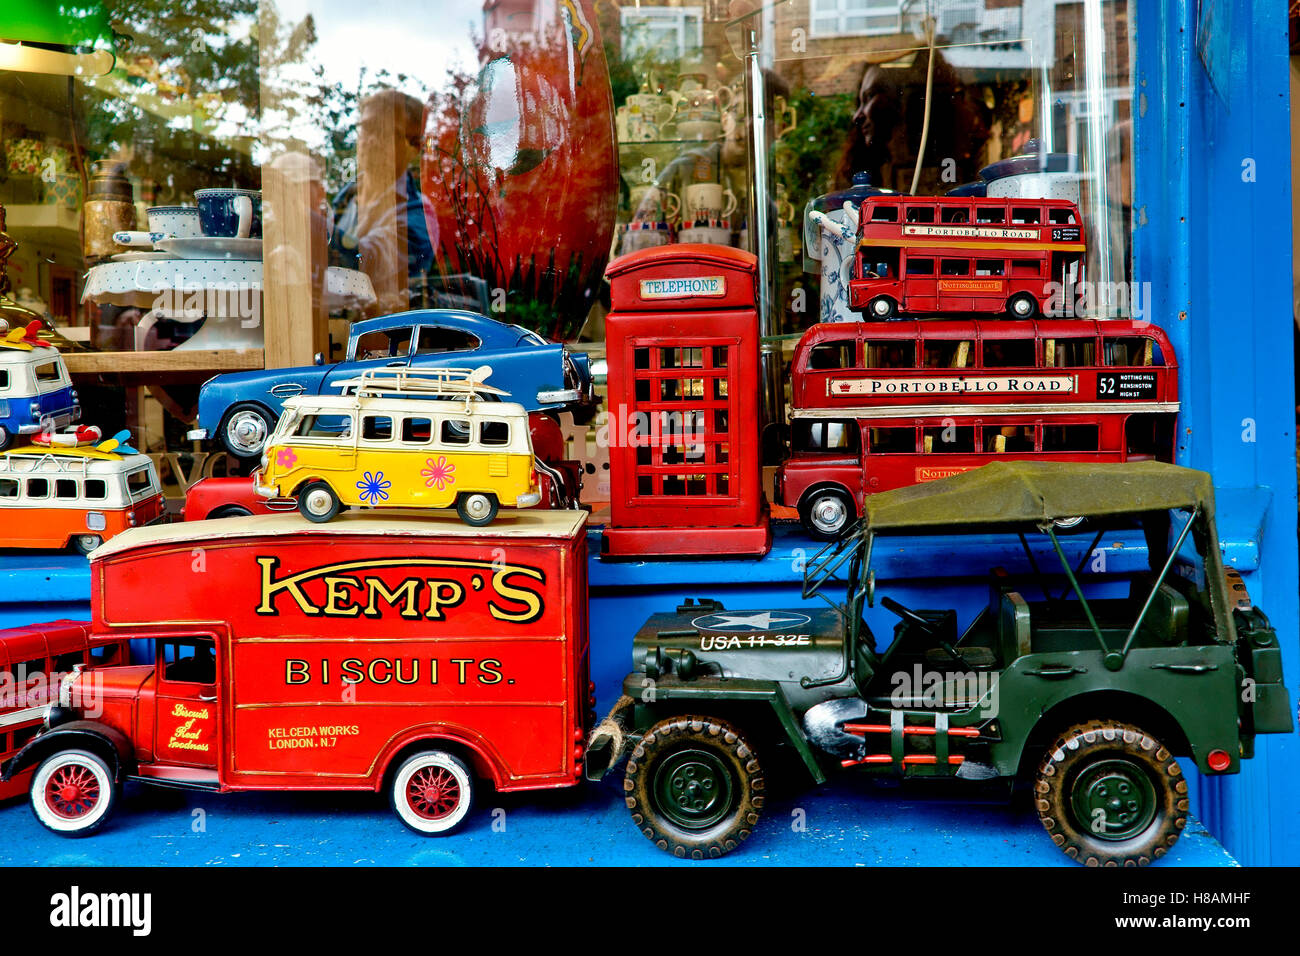 Many collectable old toy vehicles in bright colors on display in a window shop. Portobello Road market. London, - Stock Image